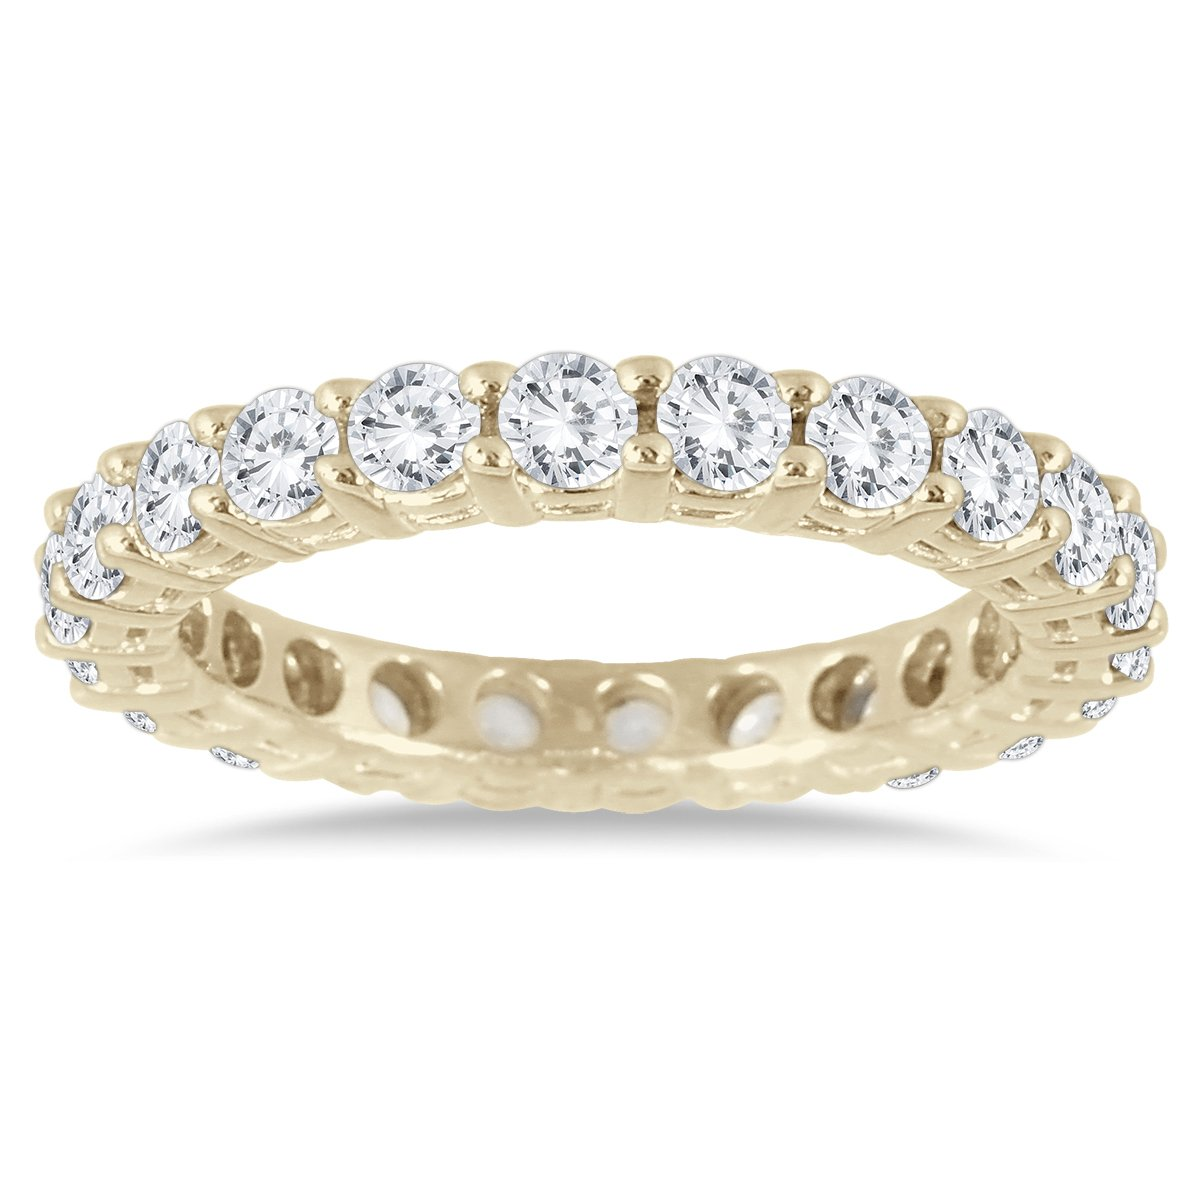 AGS Certified 2 Carat TW 14K Yellow Gold Diamond Eternity Band (K-L Color, I2-I3 Clarity)